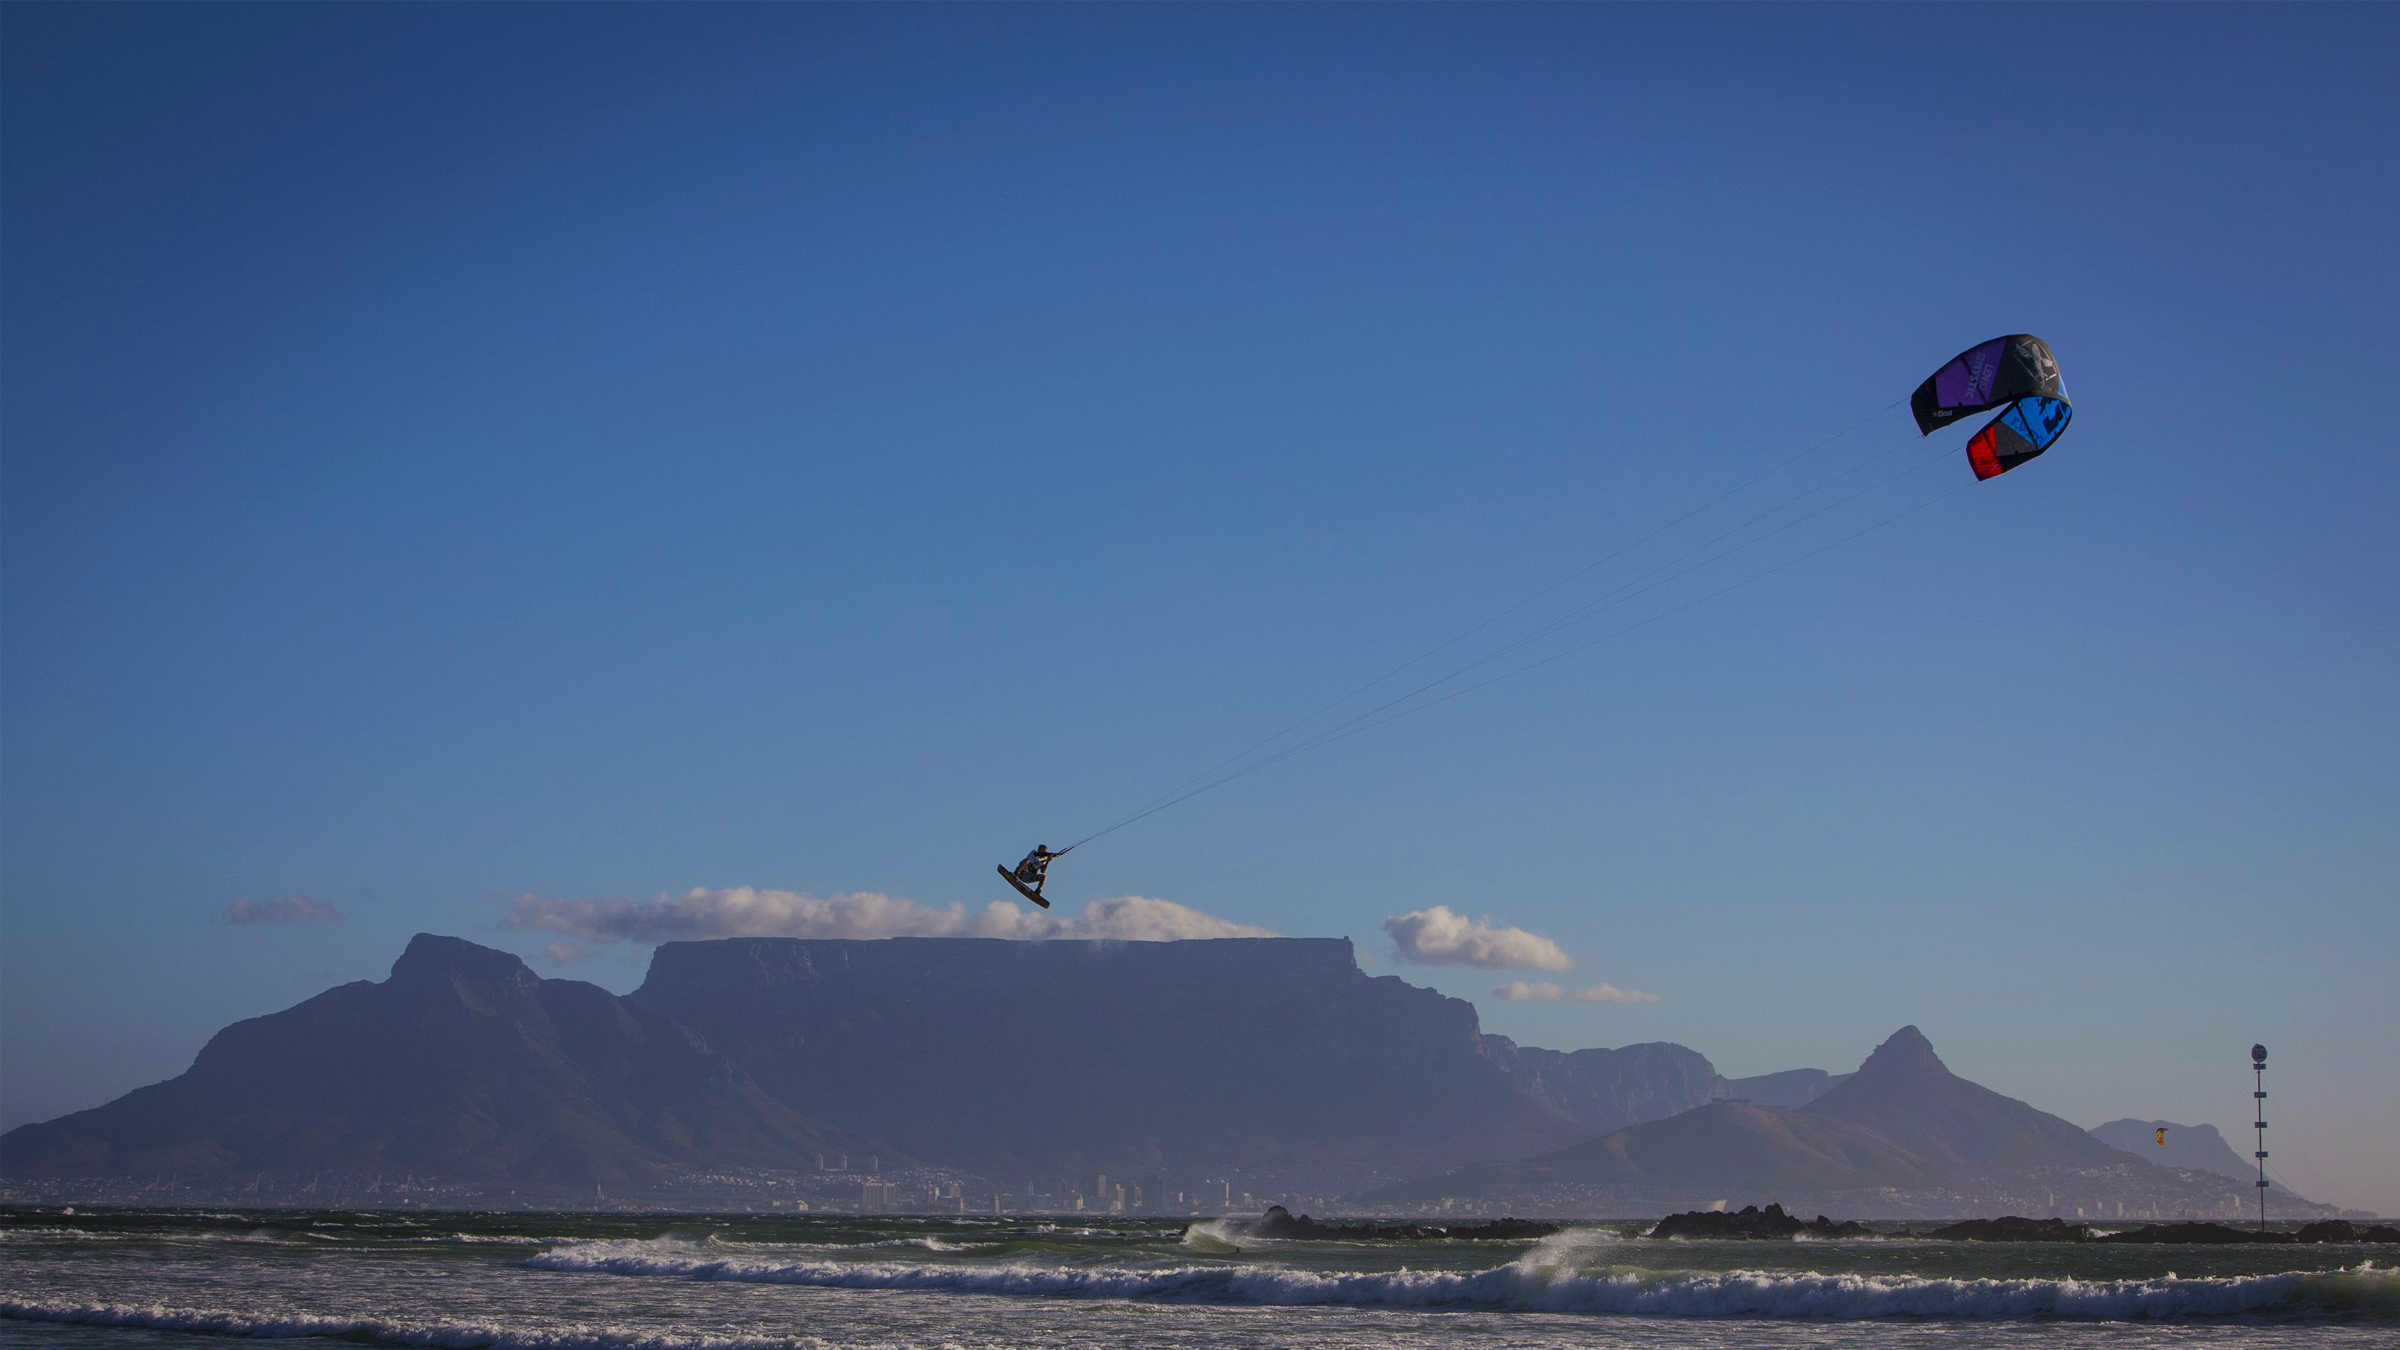 kitesurf wallpaper image - Ruben Lenten megaloop at the Red Bull King of the Air on the Best Extract kite - flying above table mountain    - in resolution: High Definition - HD 16:9 2400 X 1350